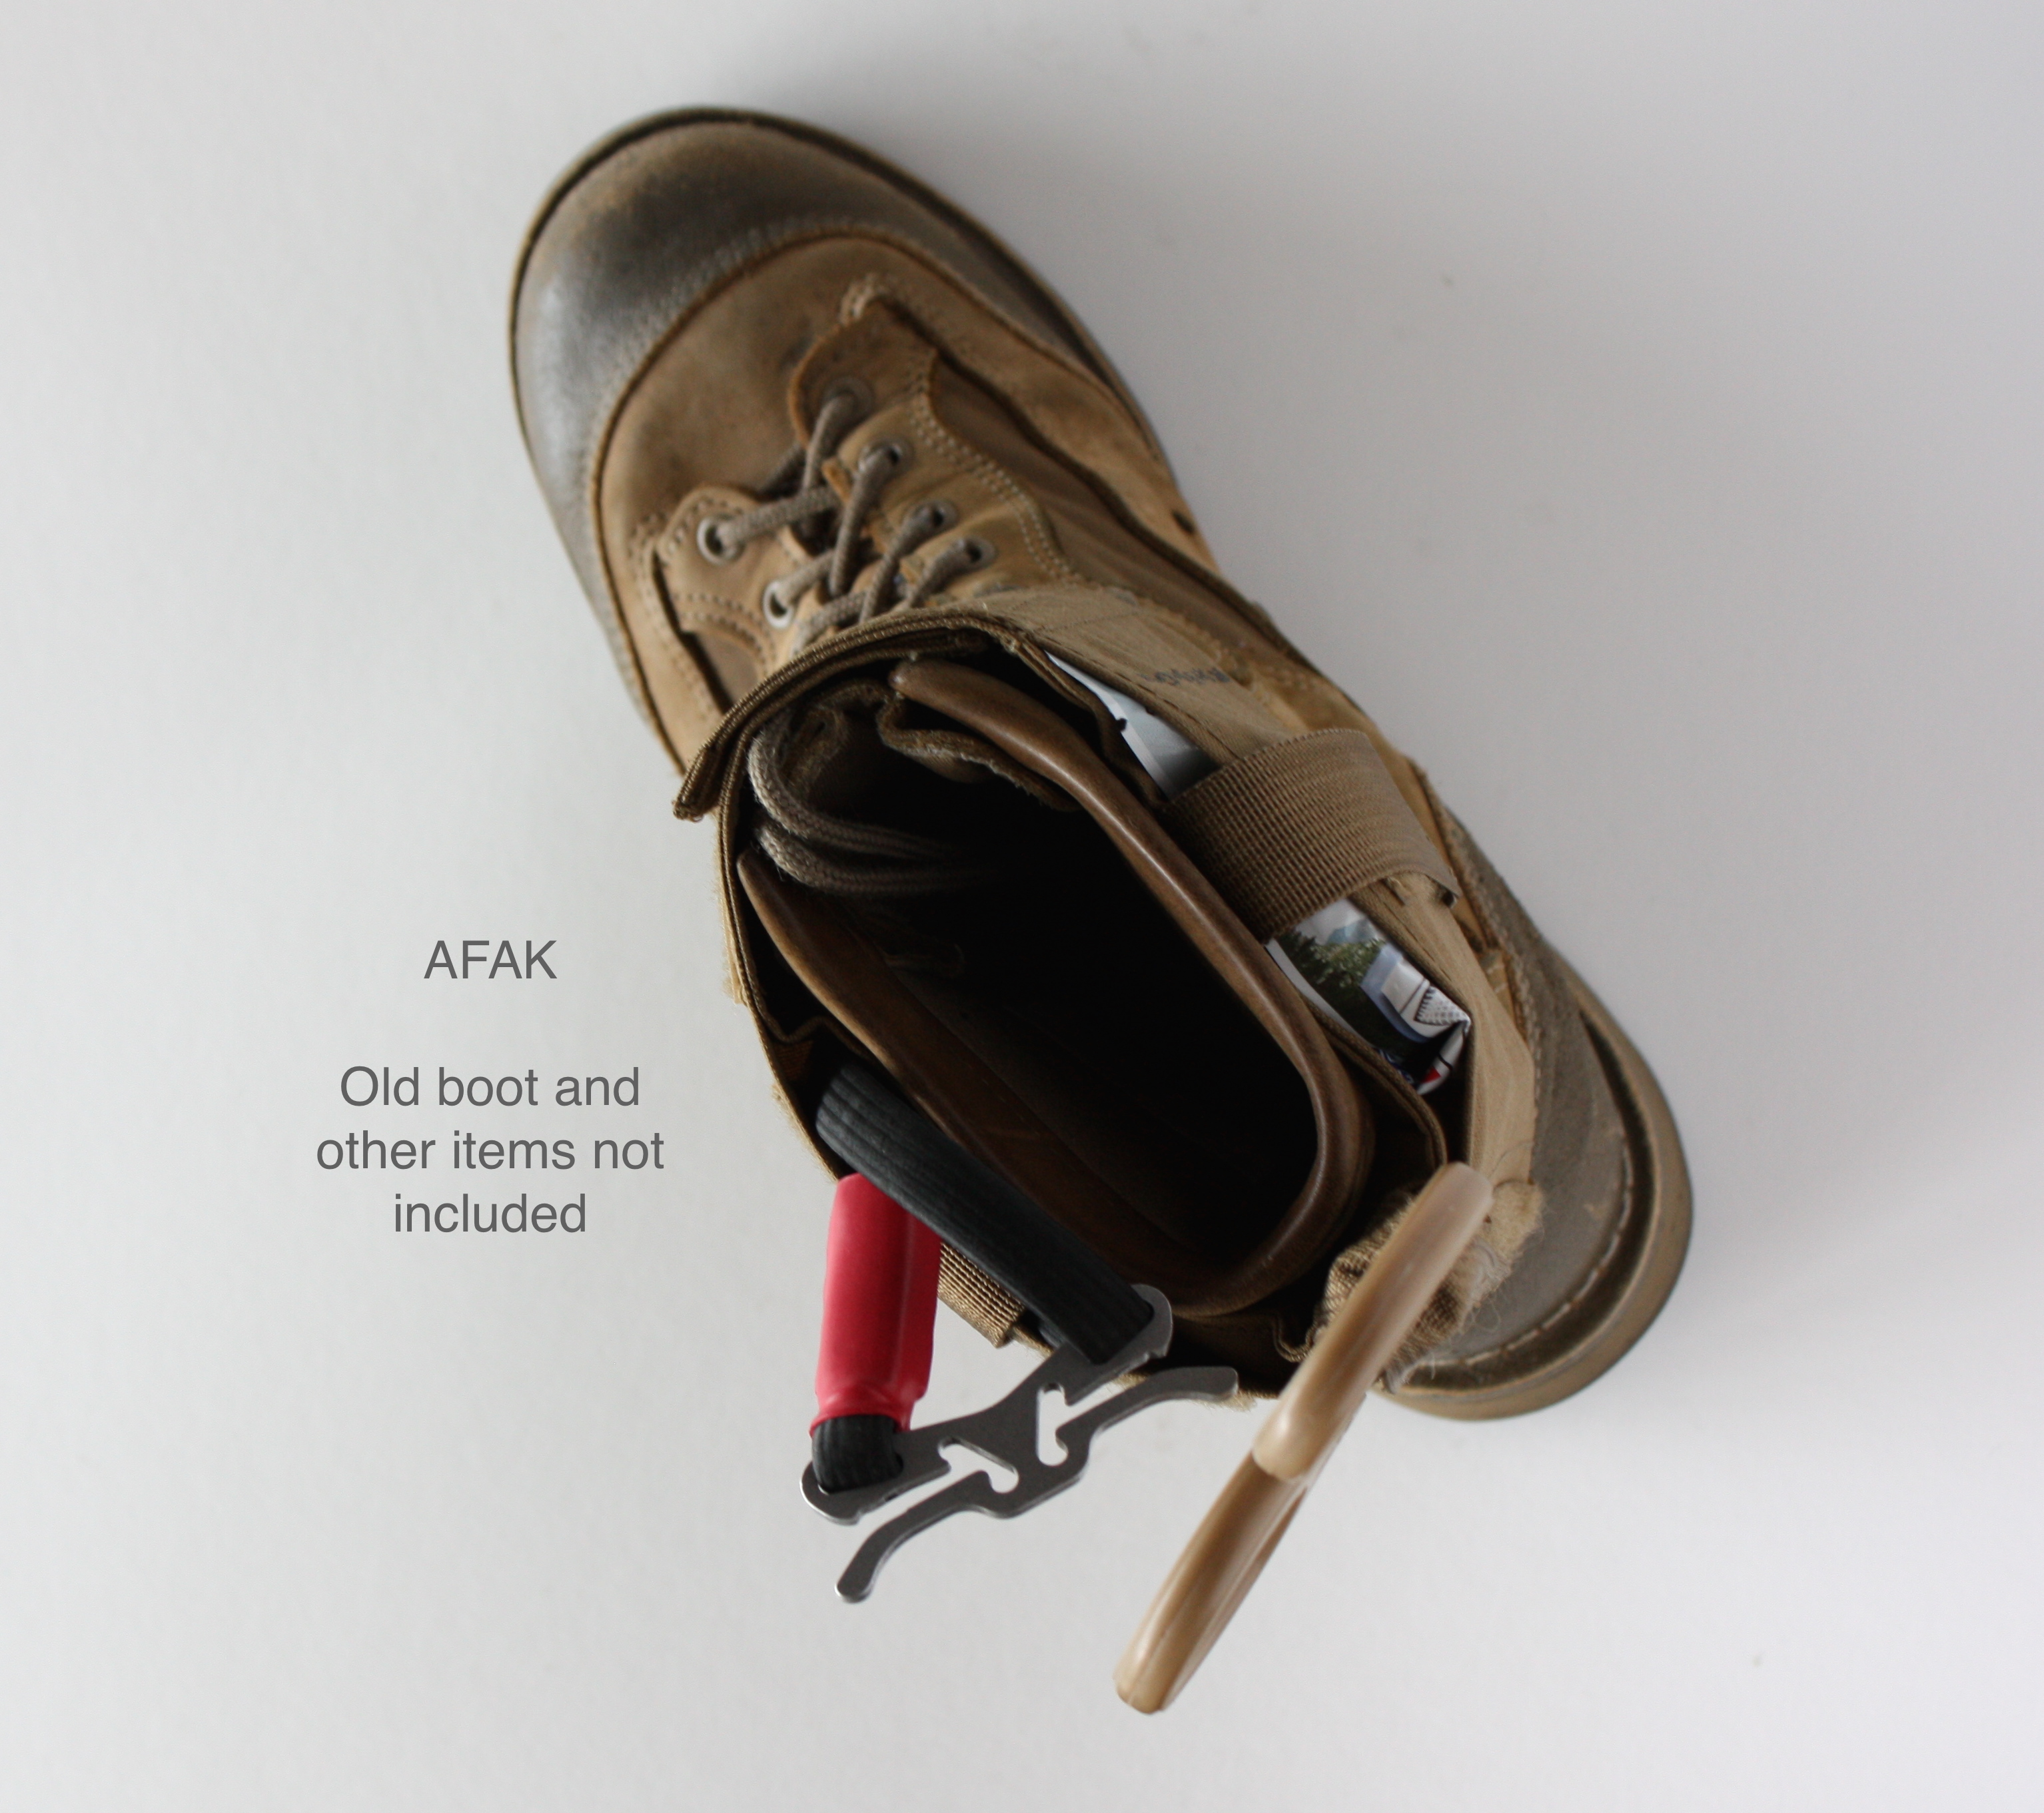 AFAK on boot top - Items not Included